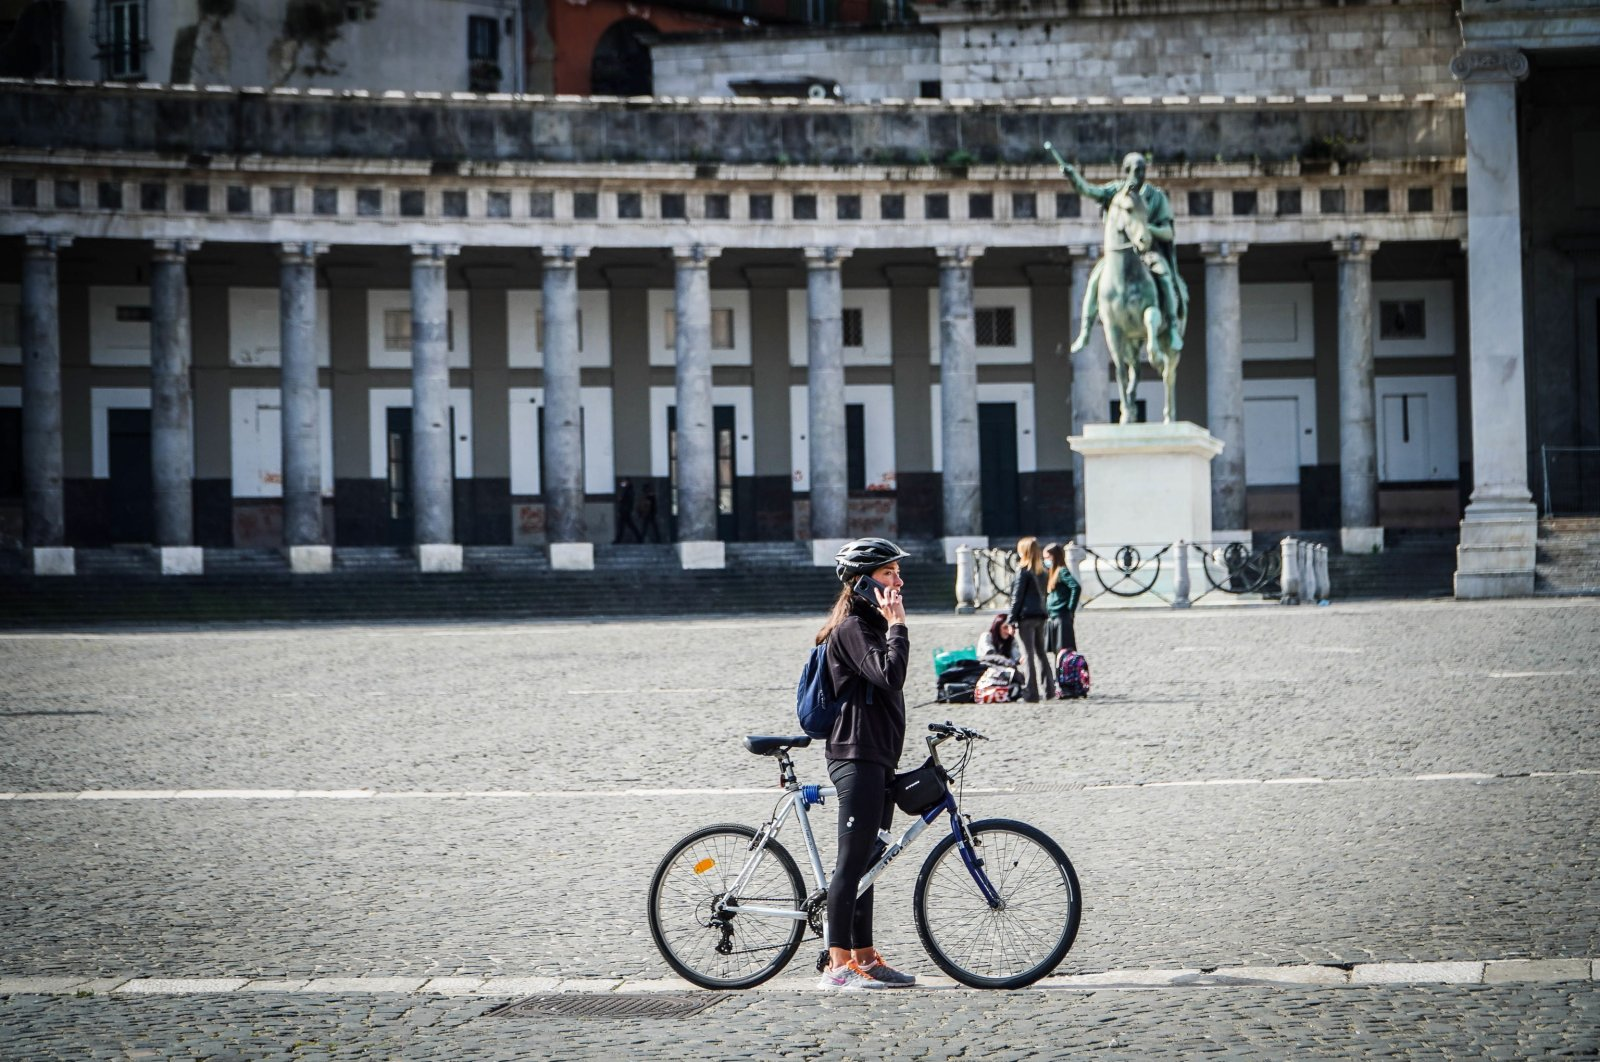 People walk on the streets and squares of the semi-deserted center of Naples, Italy, March 6, 2021. (EPA Photo)